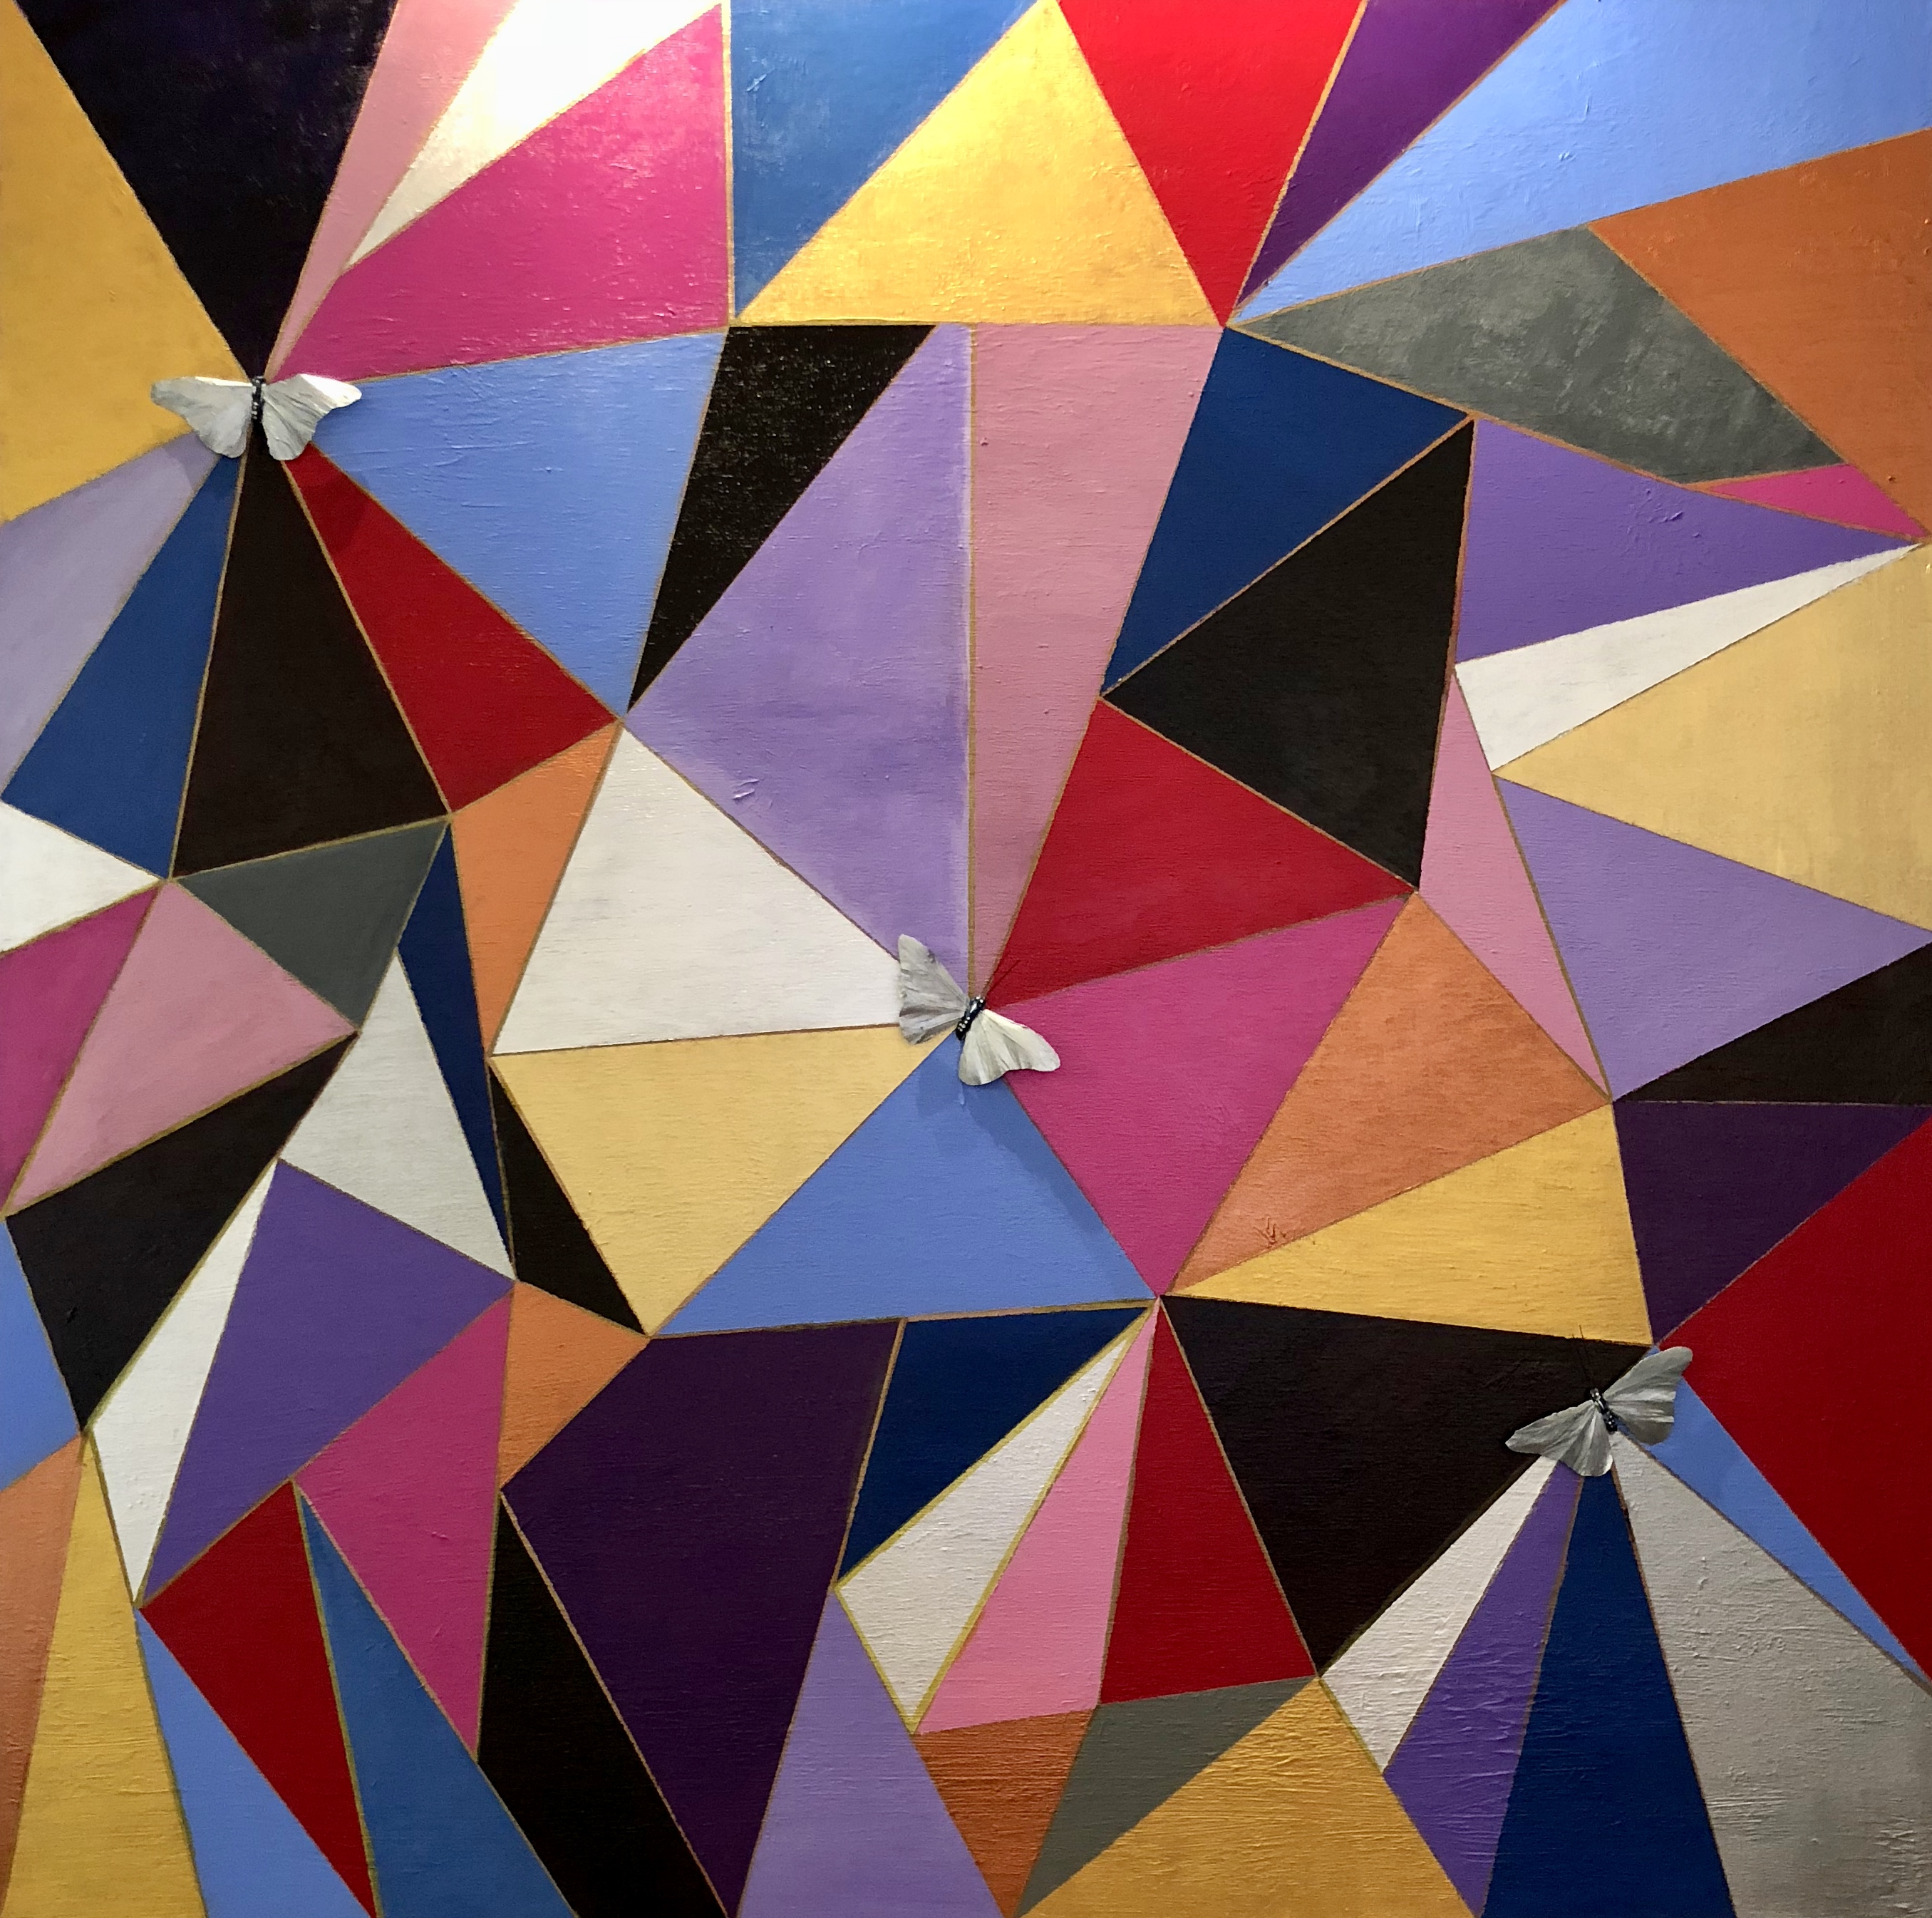 PRISM artwork by RENEE Guercia - art listed for sale on Artplode